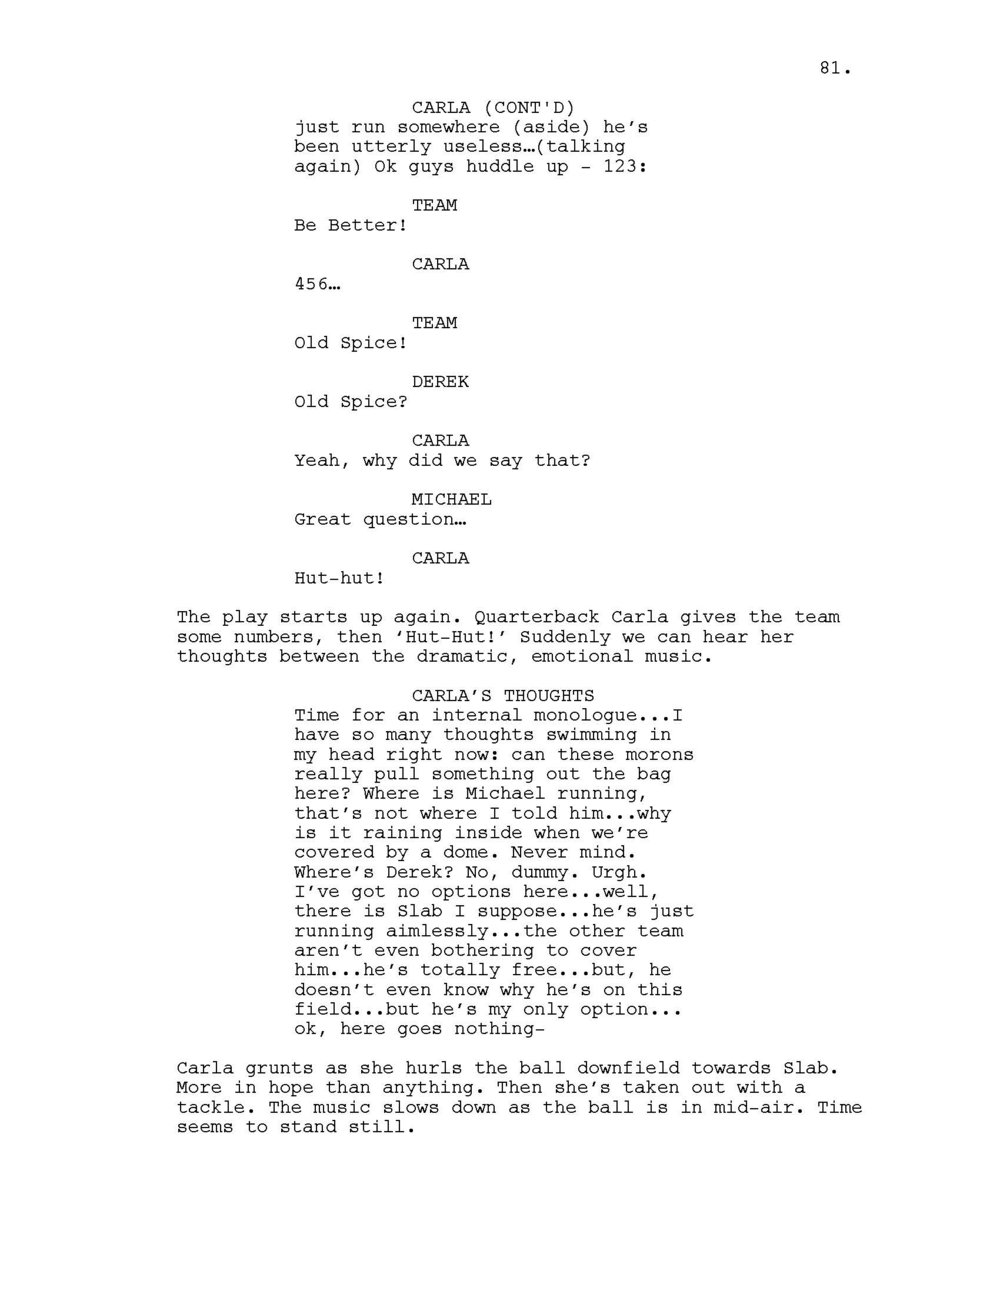 INVISIBLE WORLD SCRIPT_Page_082.jpg